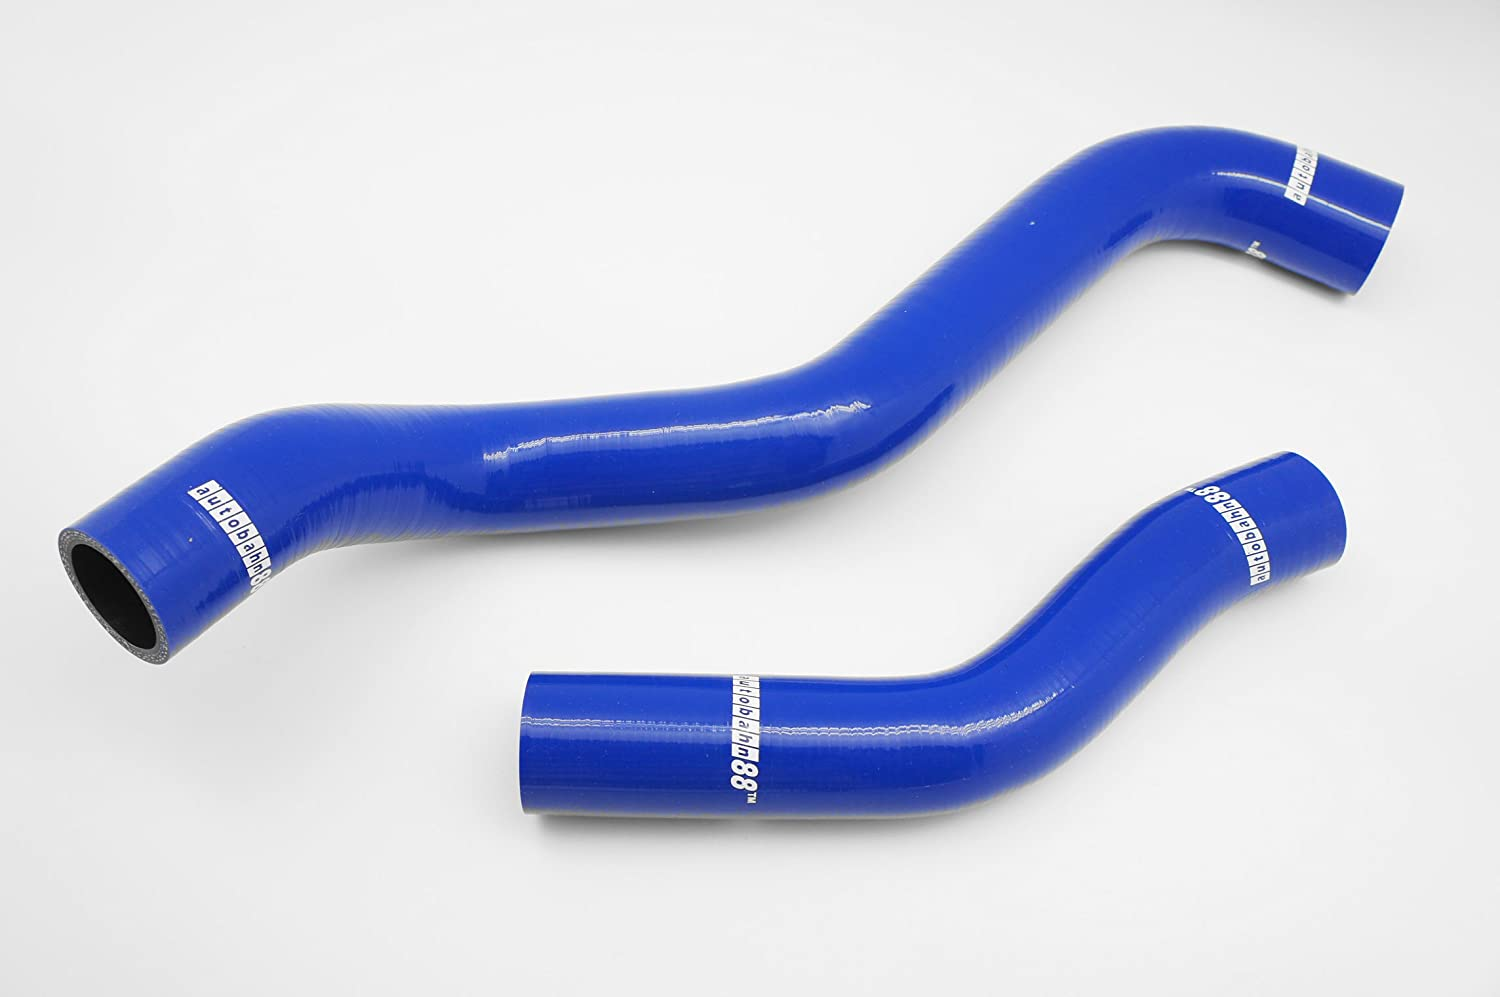 Autobahn88 Radiator Coolant Silicone Hose Kit for 1992-1996 Mitsubishi Lancer Evolution EVO 1 2 3 CD9A CE9A 4G63 Blue -with Clamp Set